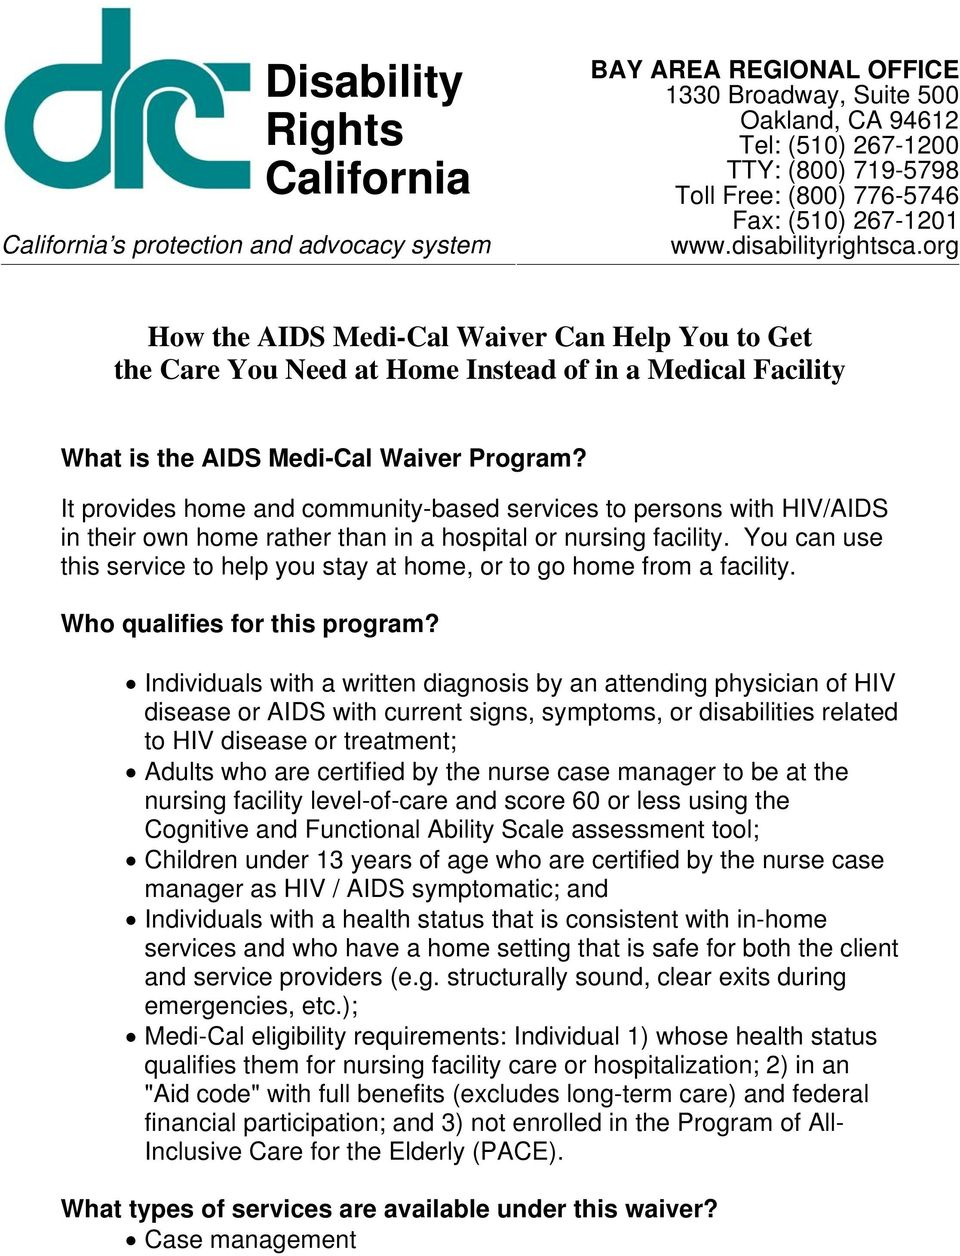 org How the AIDS Medi-Cal Waiver Can Help You to Get the Care You Need at Home Instead of in a Medical Facility What is the AIDS Medi-Cal Waiver Program?